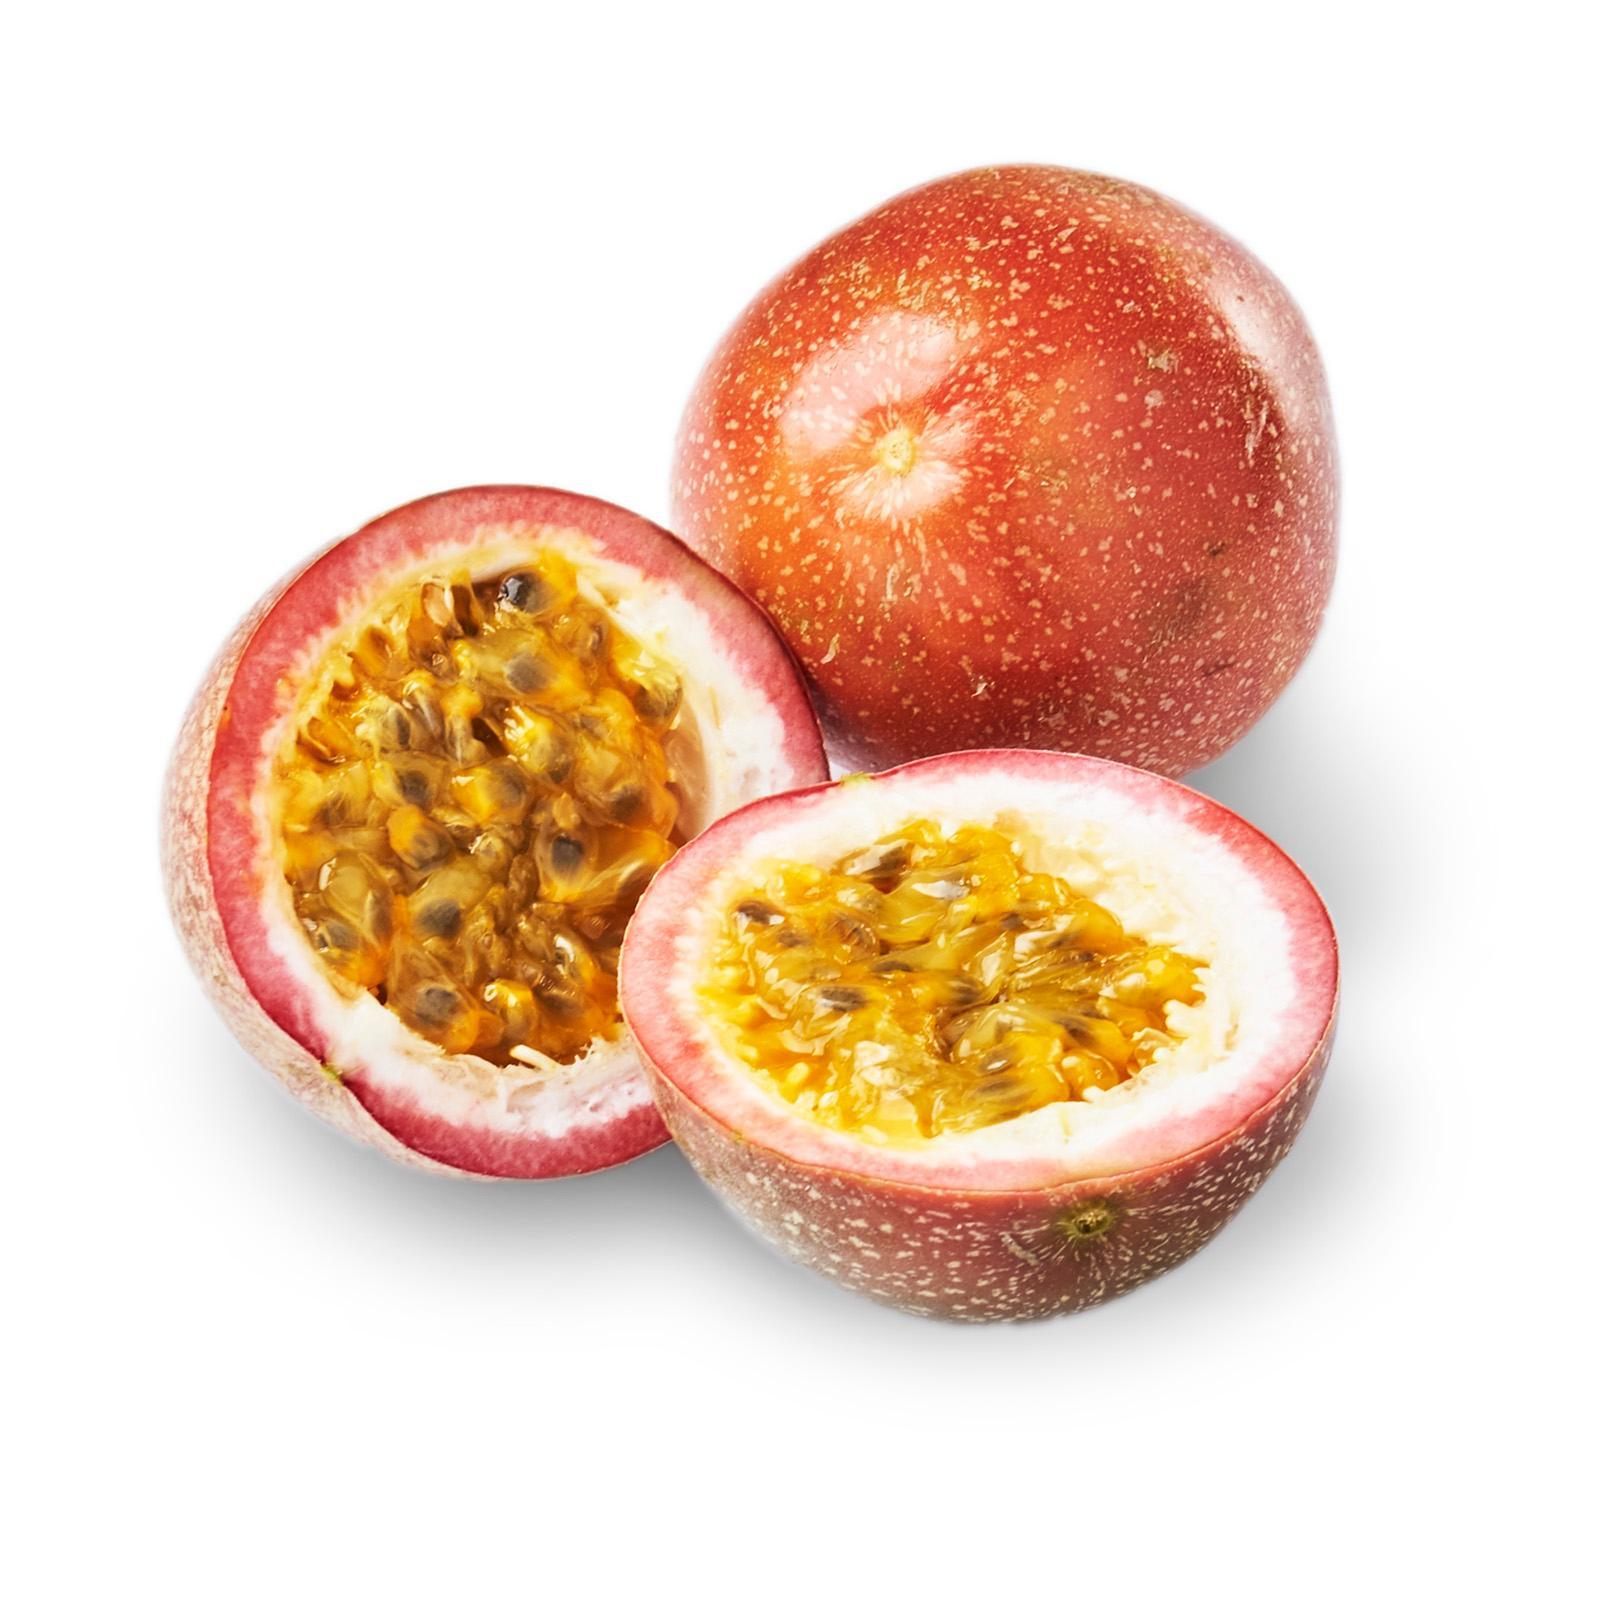 Sunny Fruit Passion Fruit By Redmart